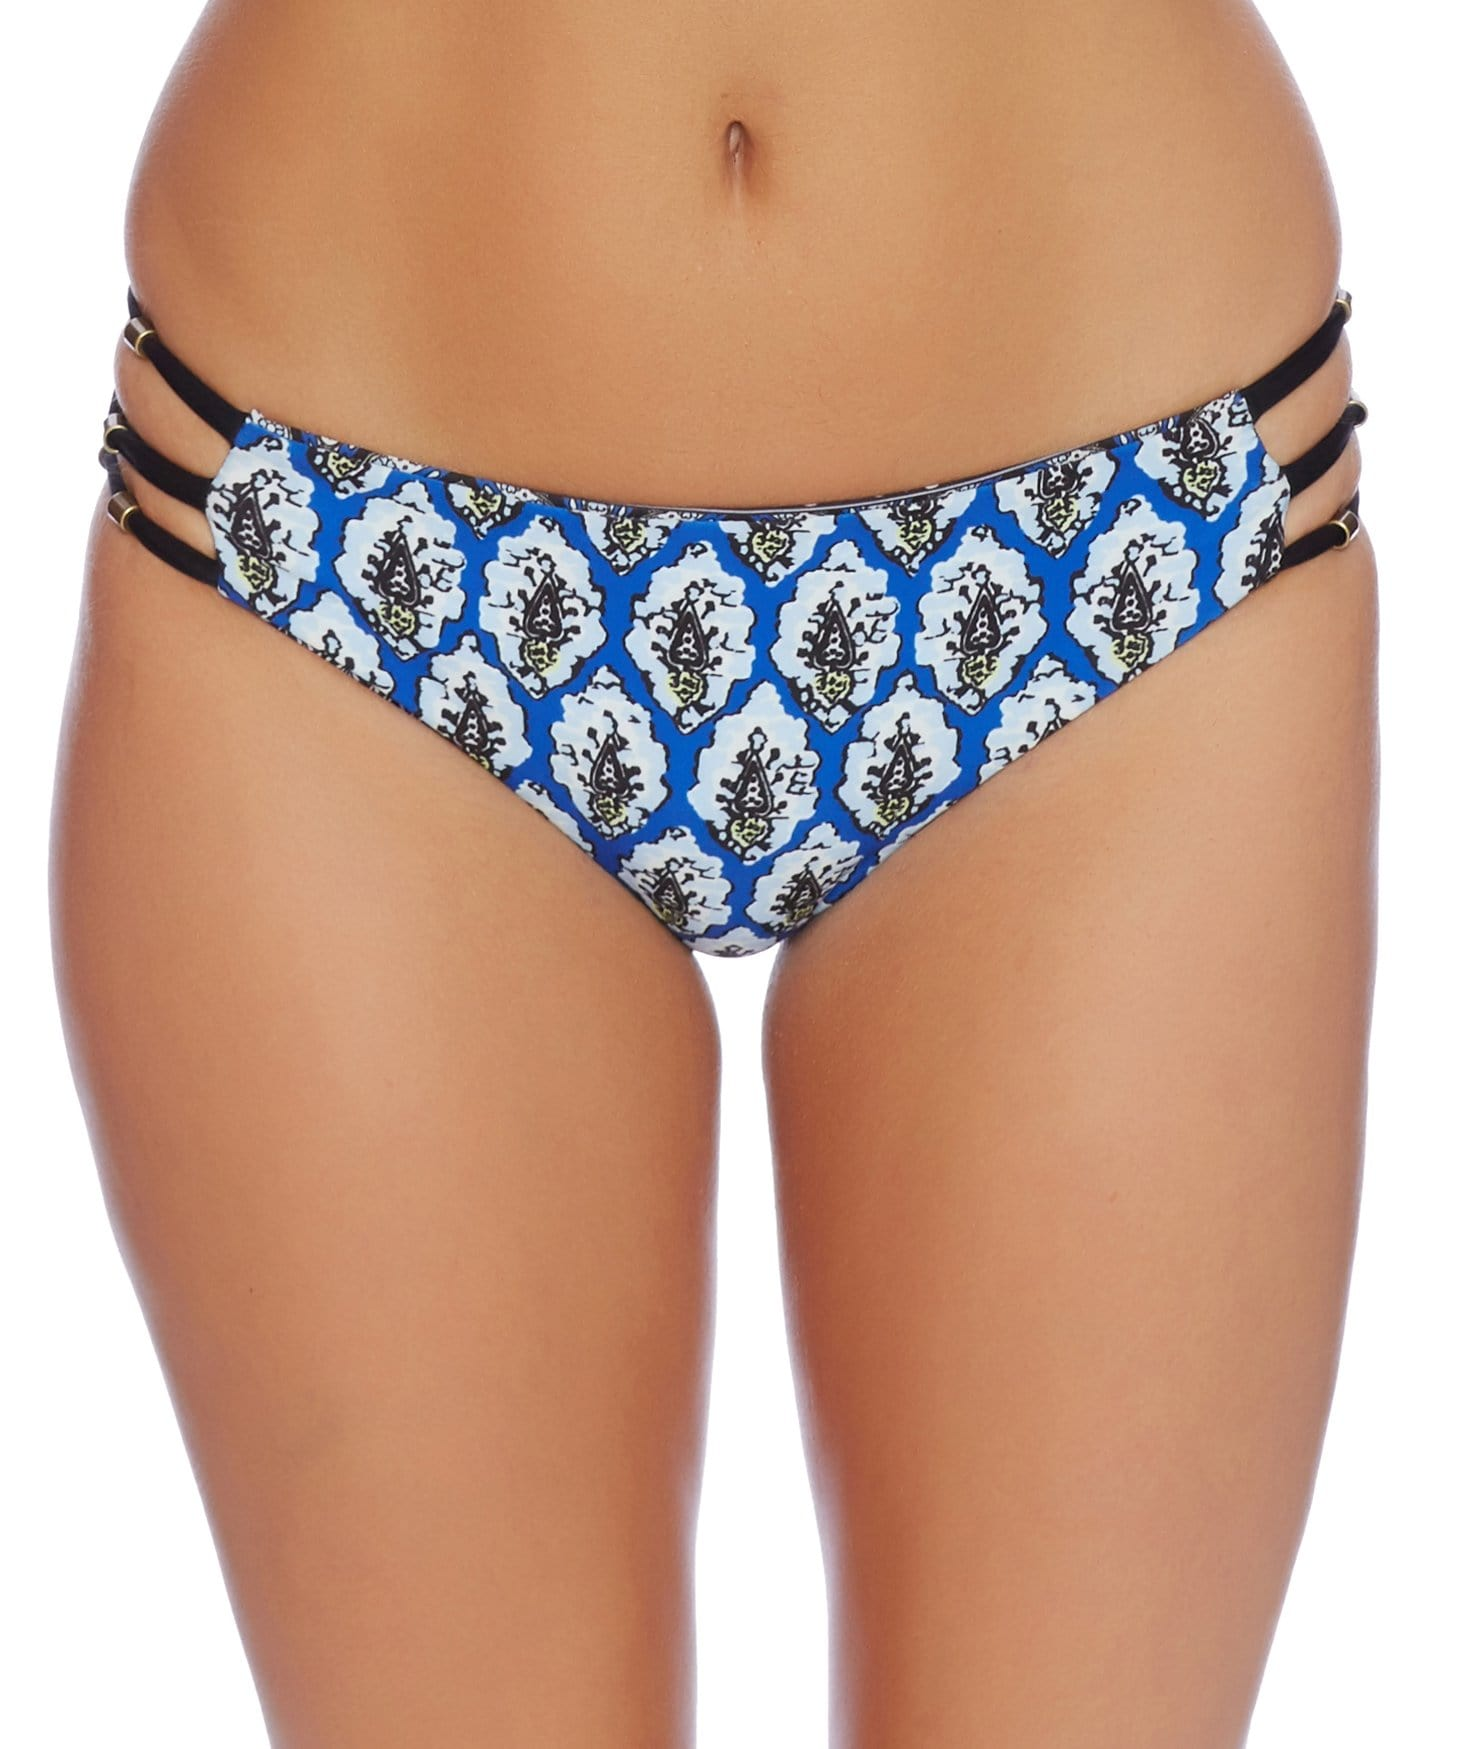 Renaissance Medallion Strap Side Bikini Bottom